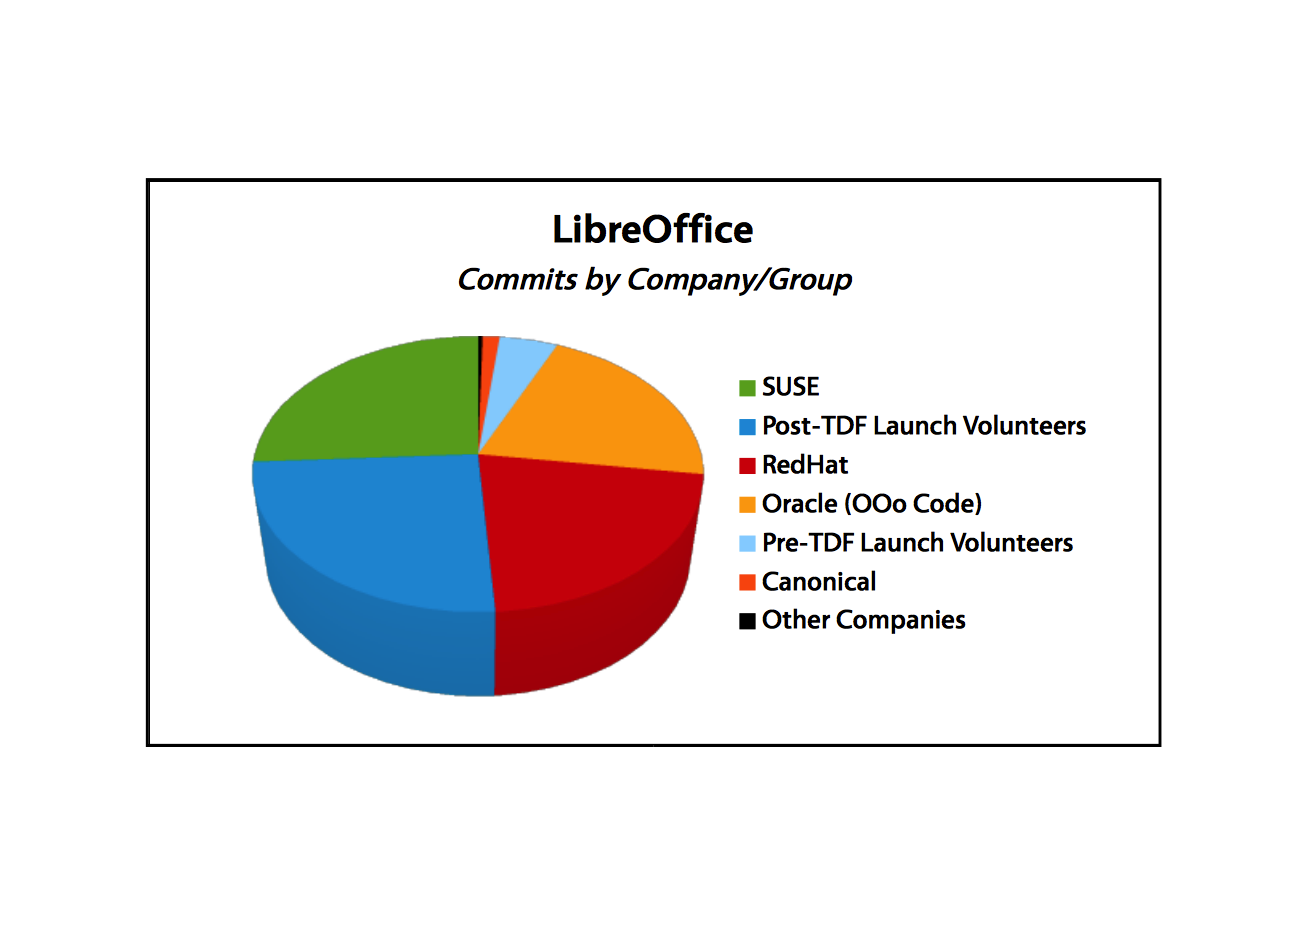 Figure 2: Code contributions by company or group